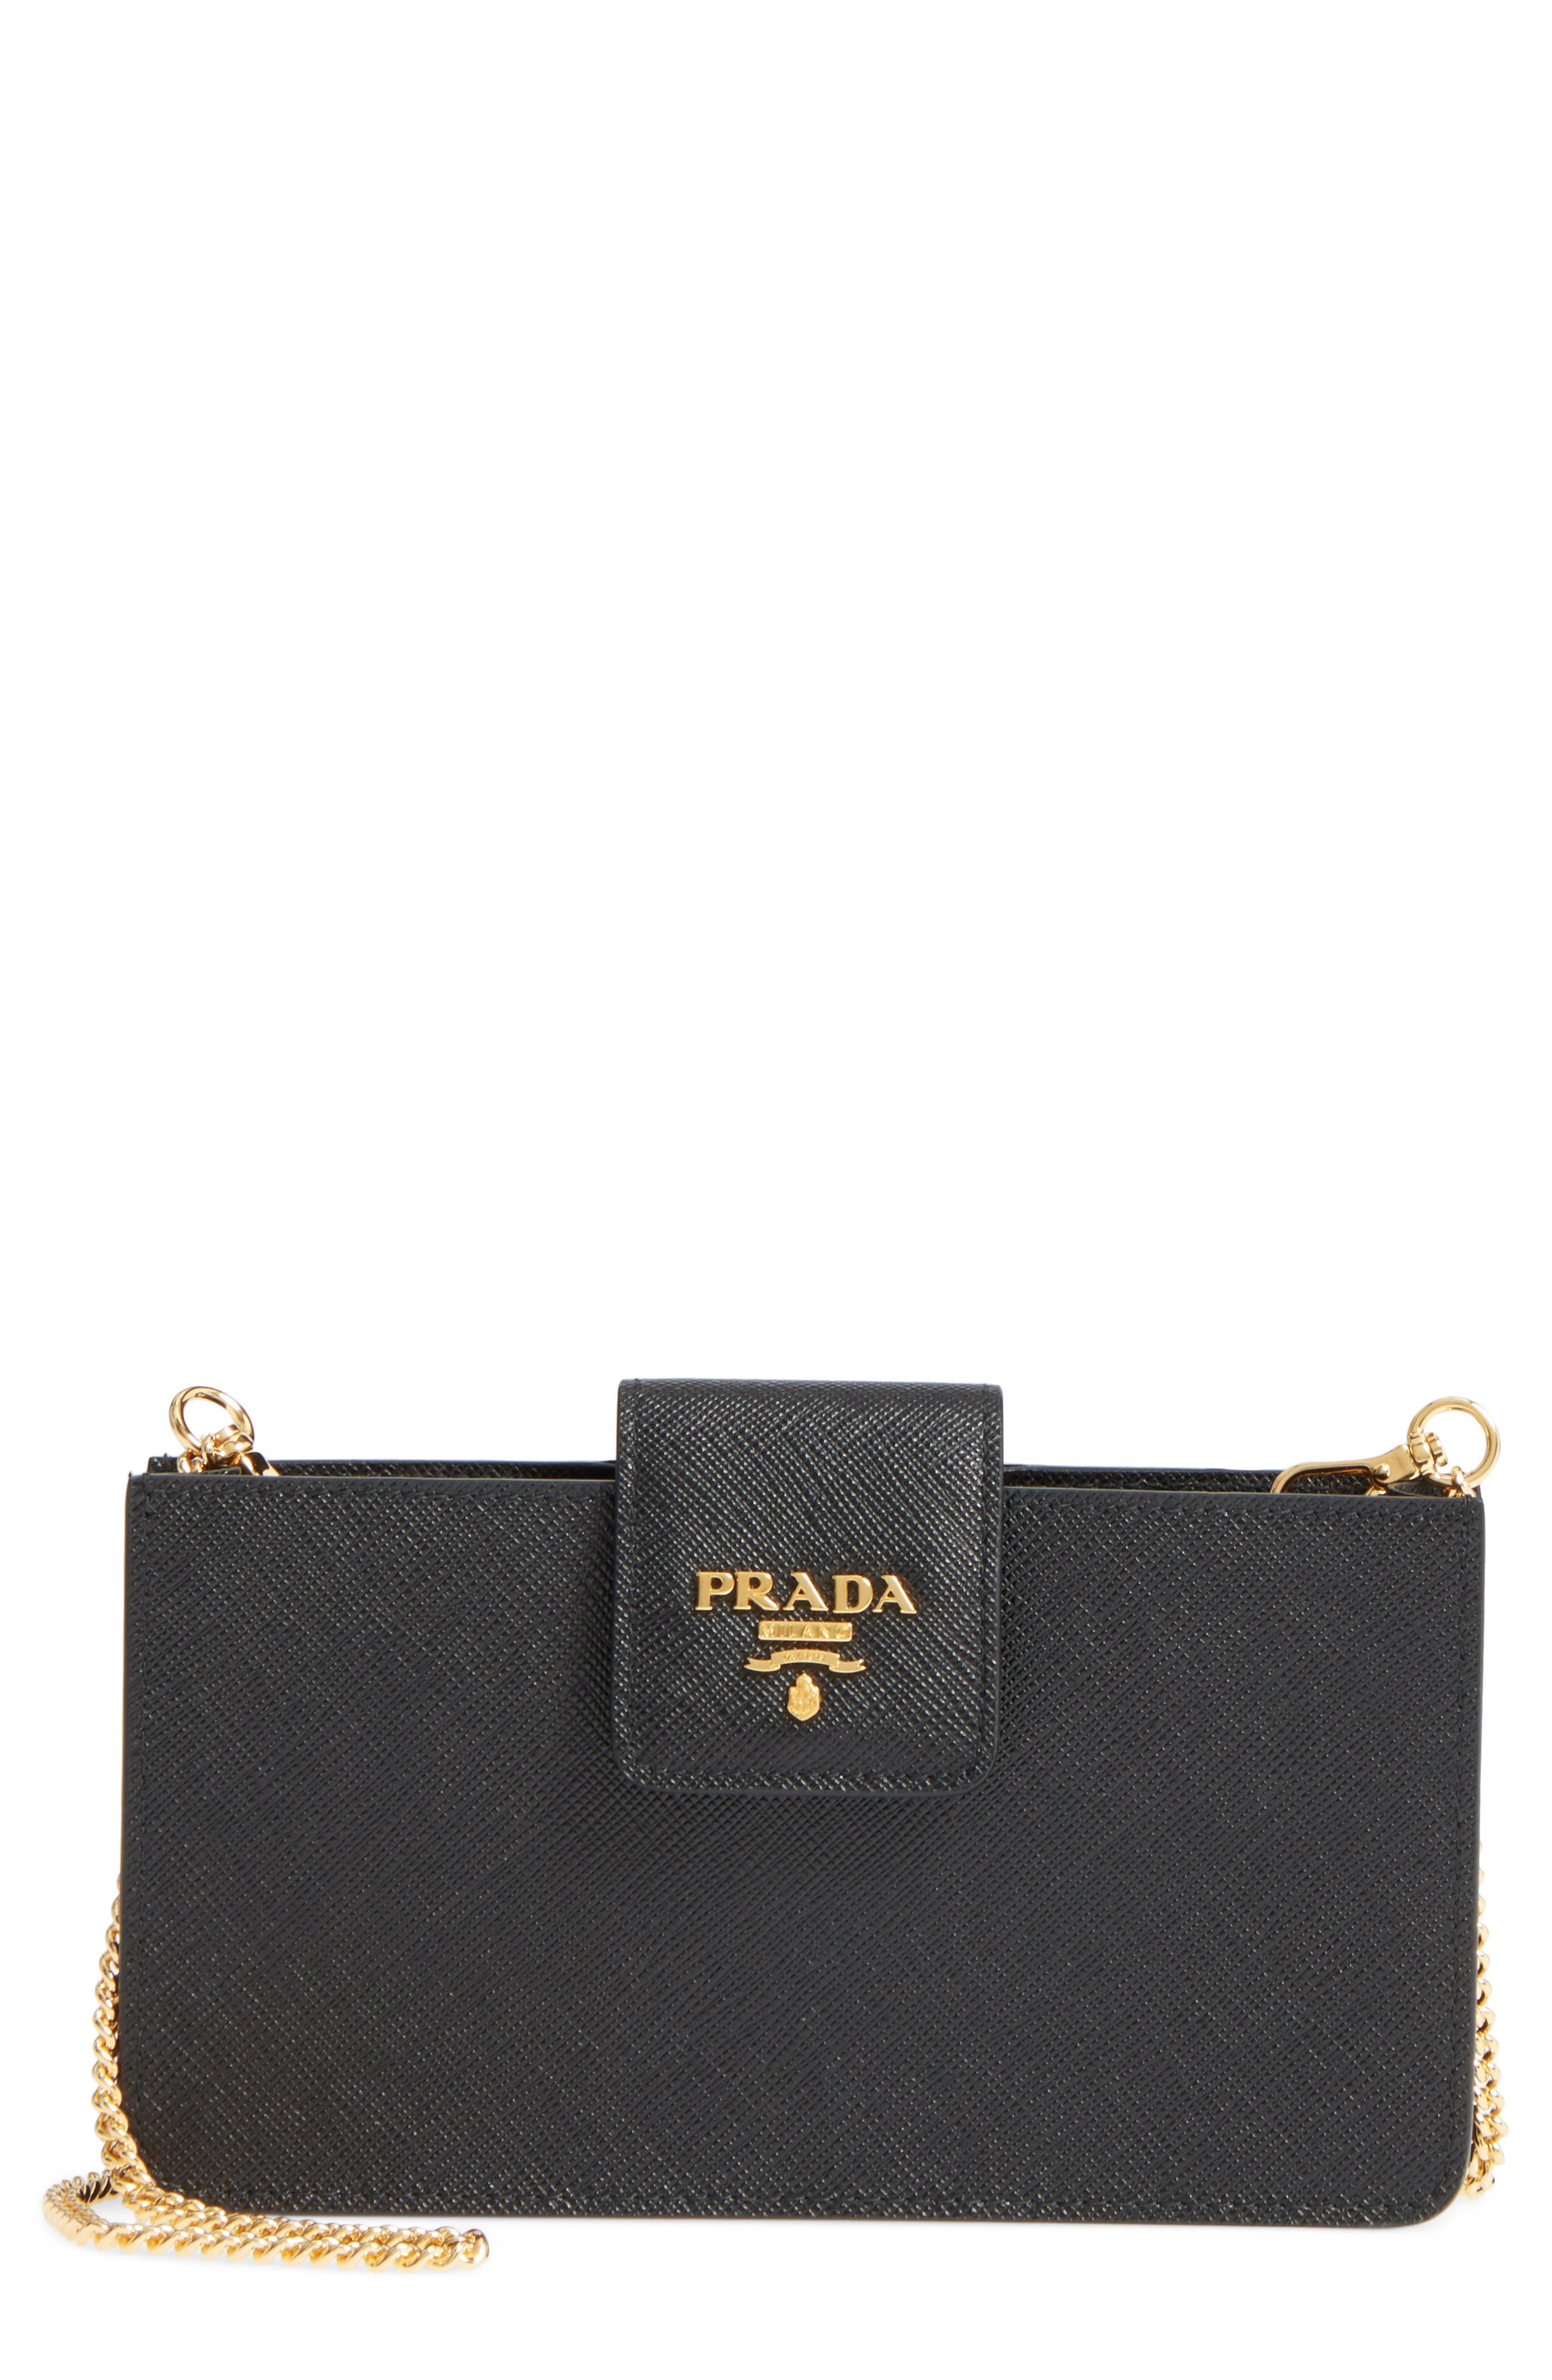 PRADA, Saffiano Leather Phone Wallet on a Chain, Main thumbnail 1, color, 001